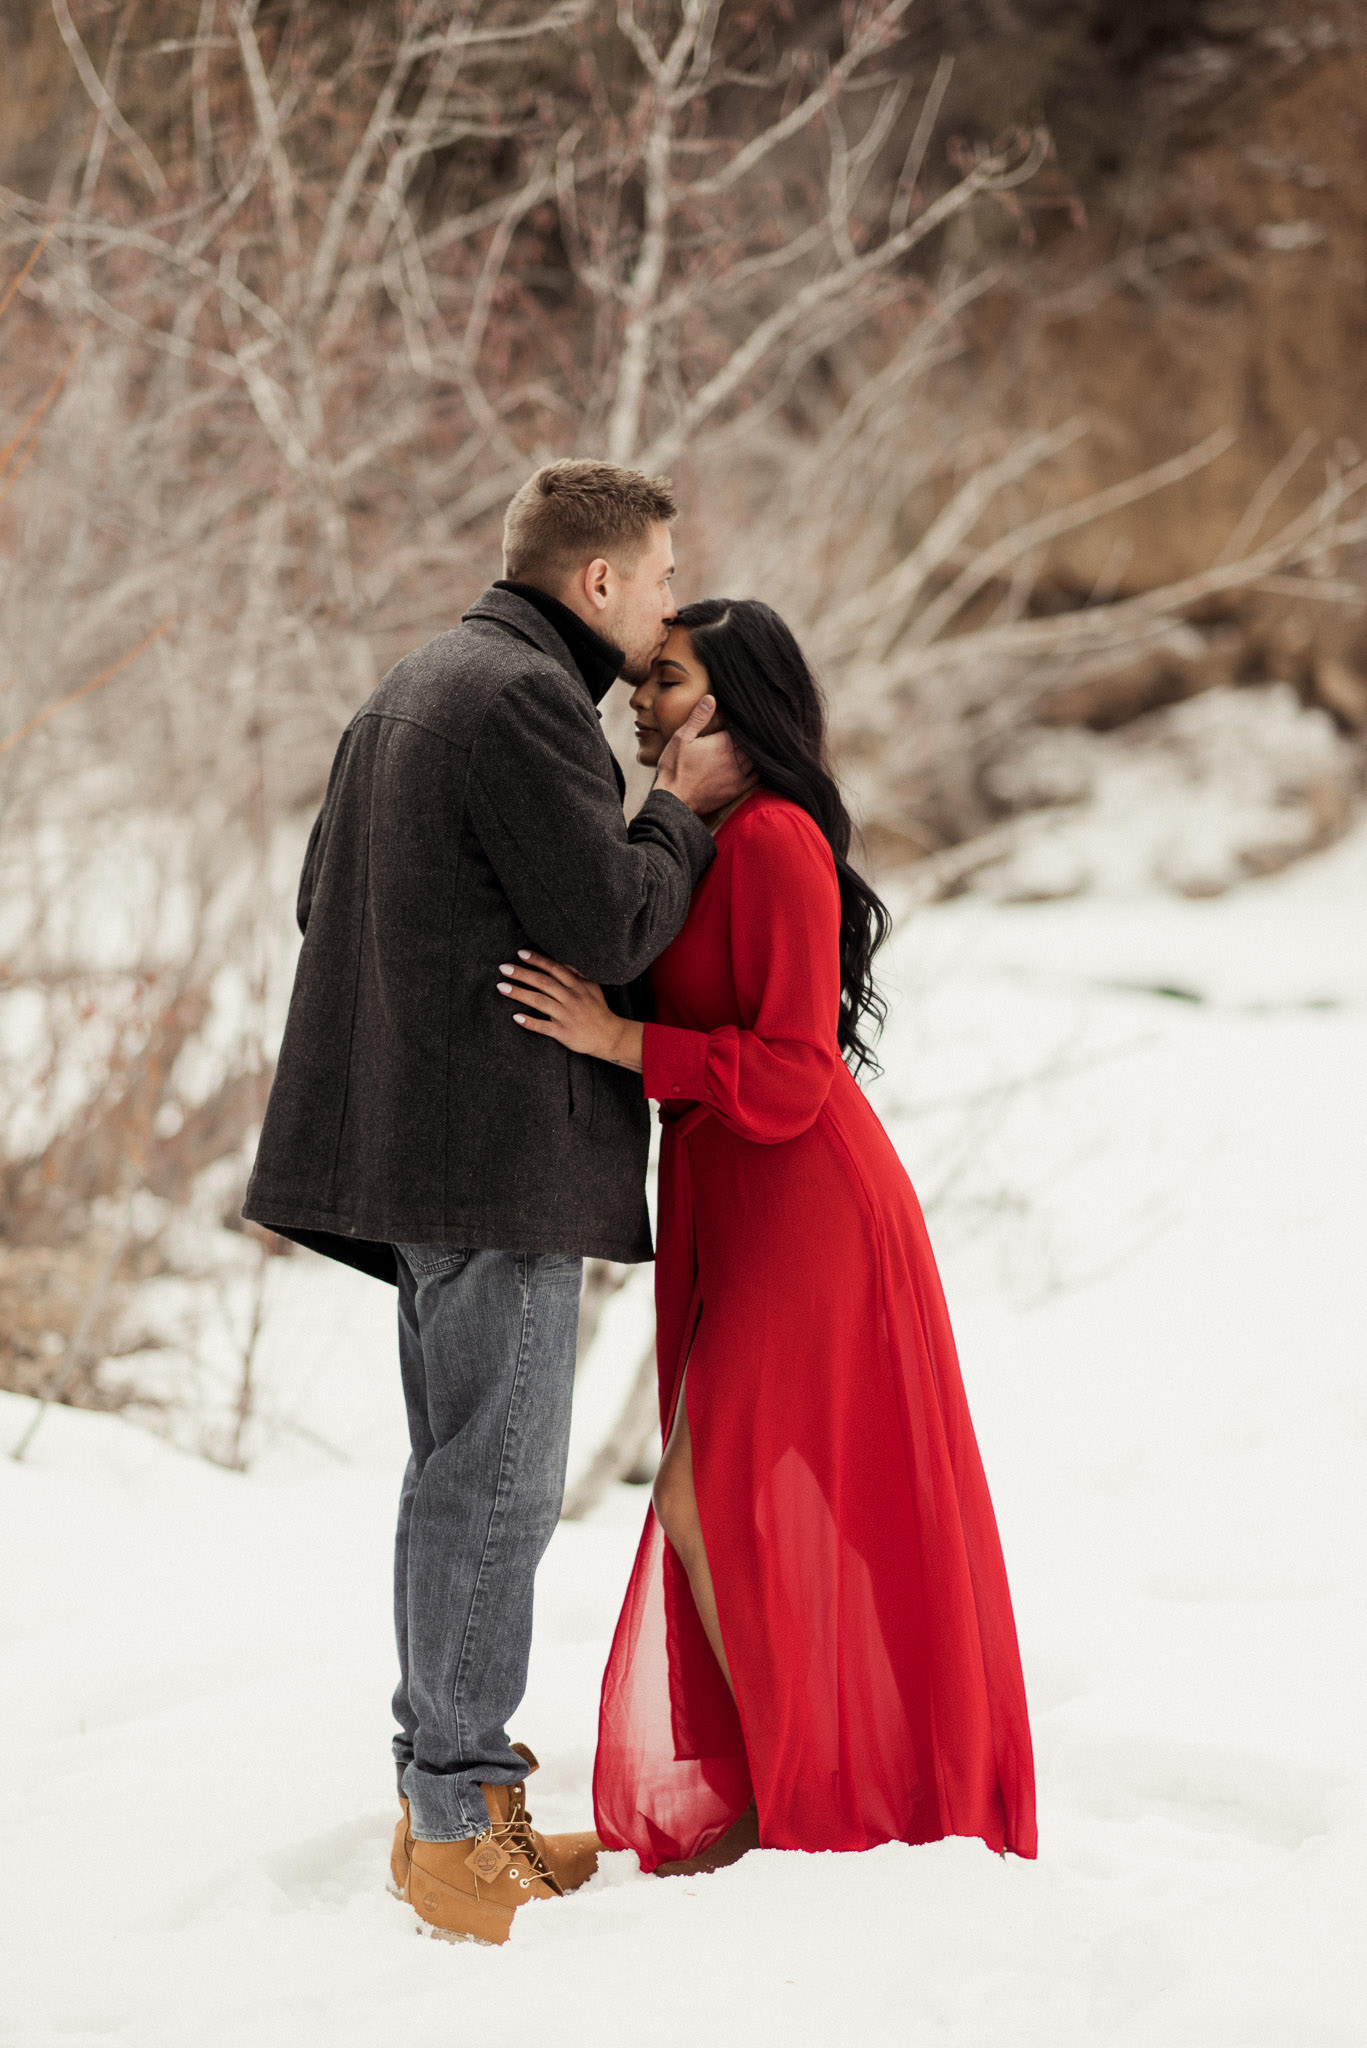 sandra-ryan-colorado-winter-snow-engagement-couples-valentines-red-houston-photographer-sm-2.jpg